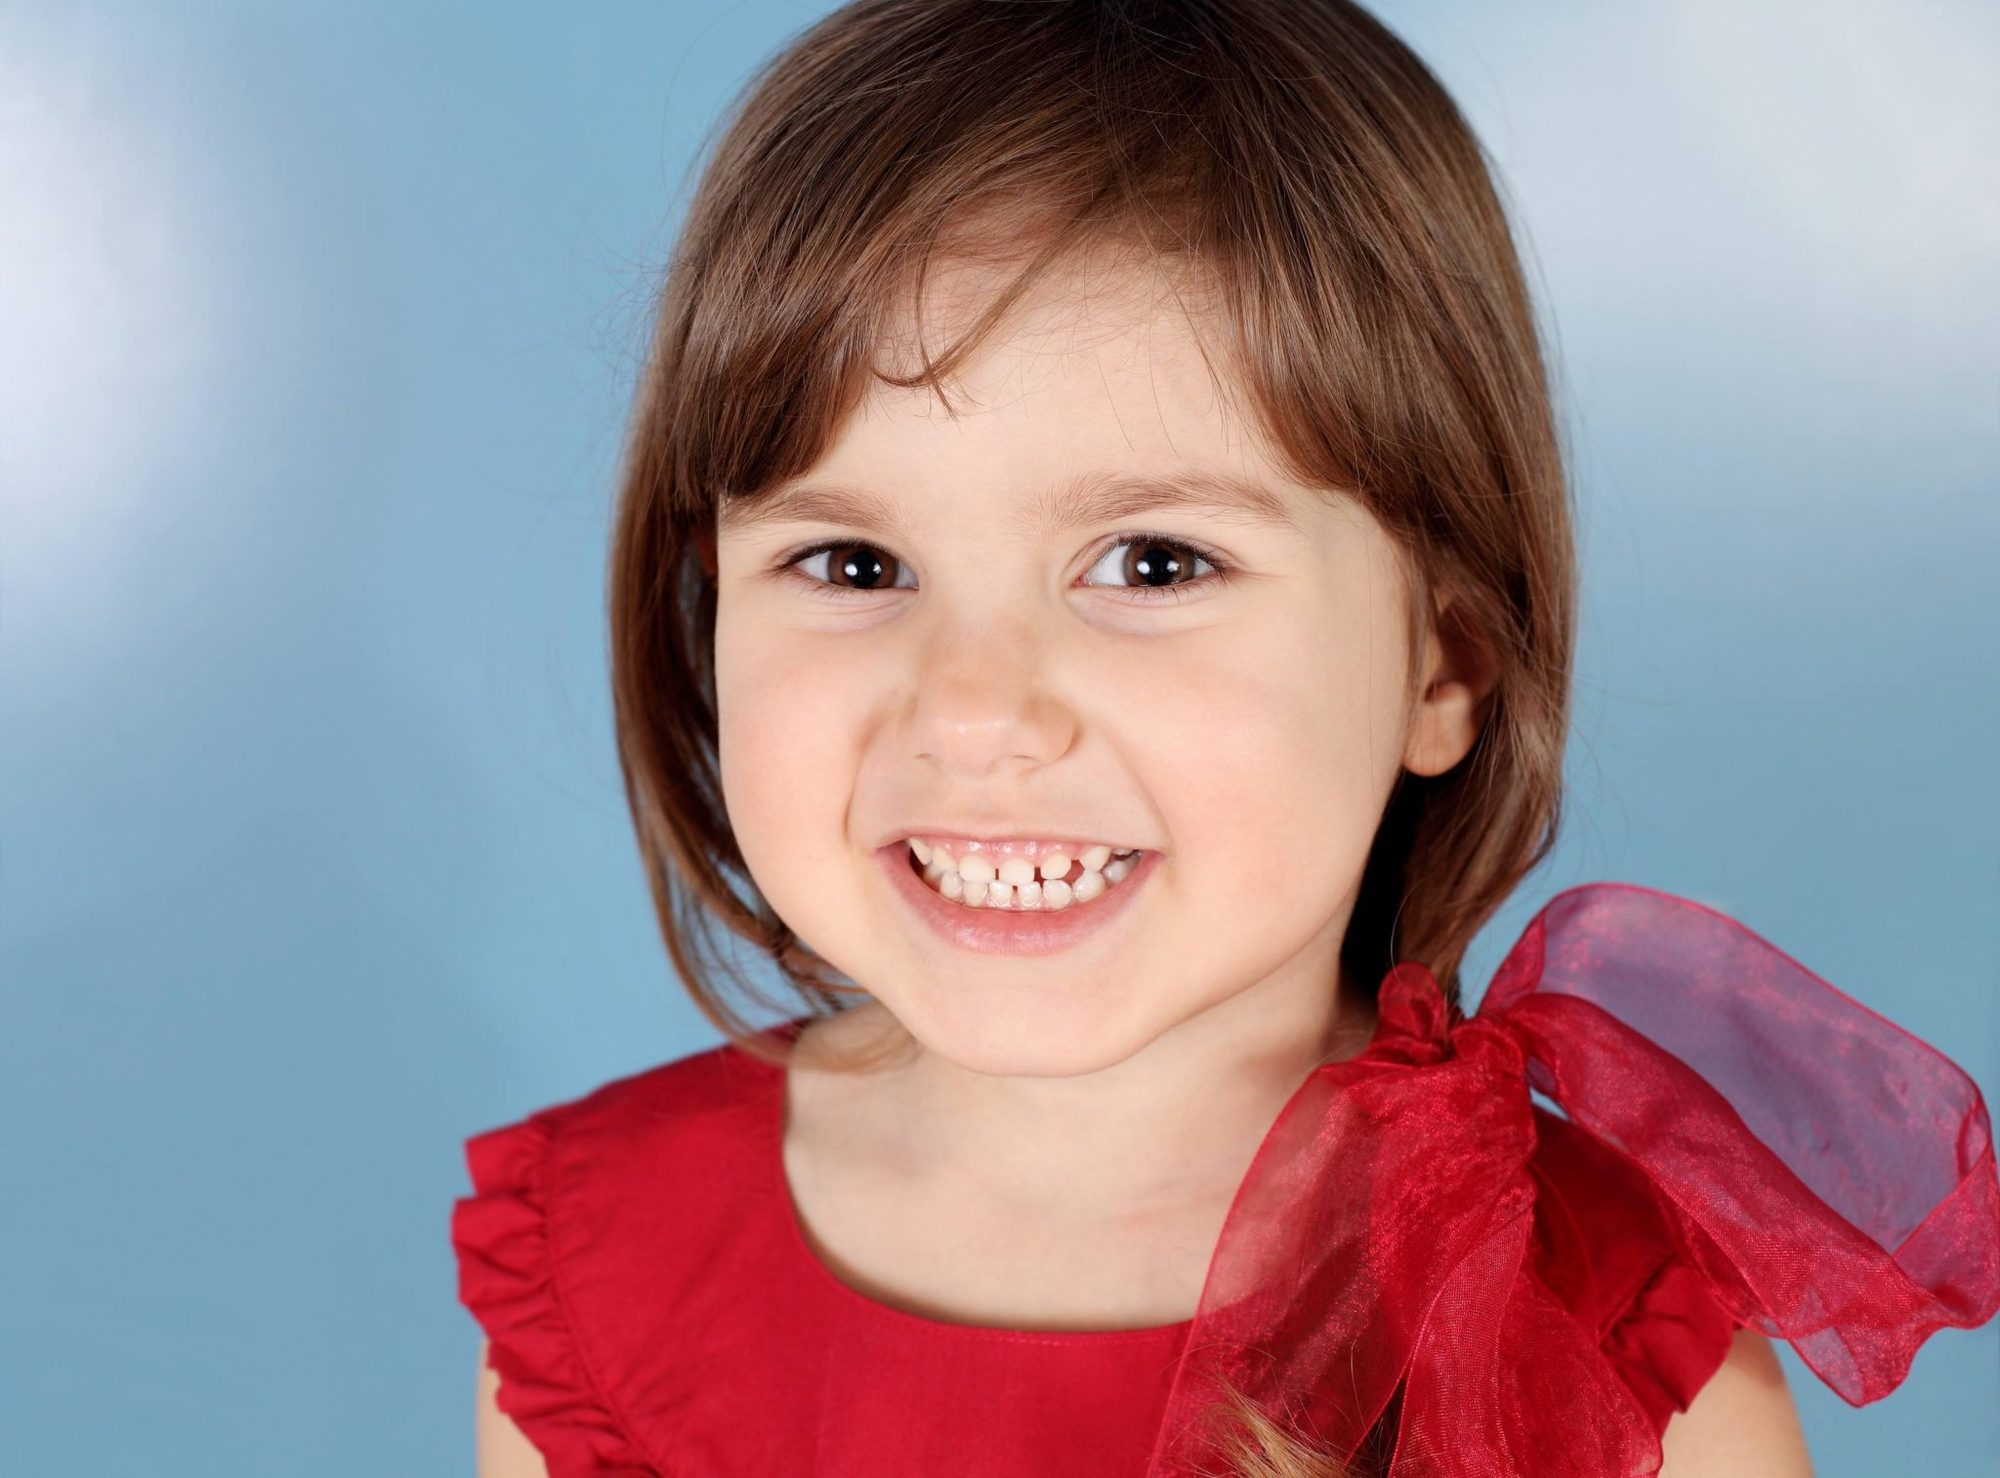 Why Children's Dentistry is Important